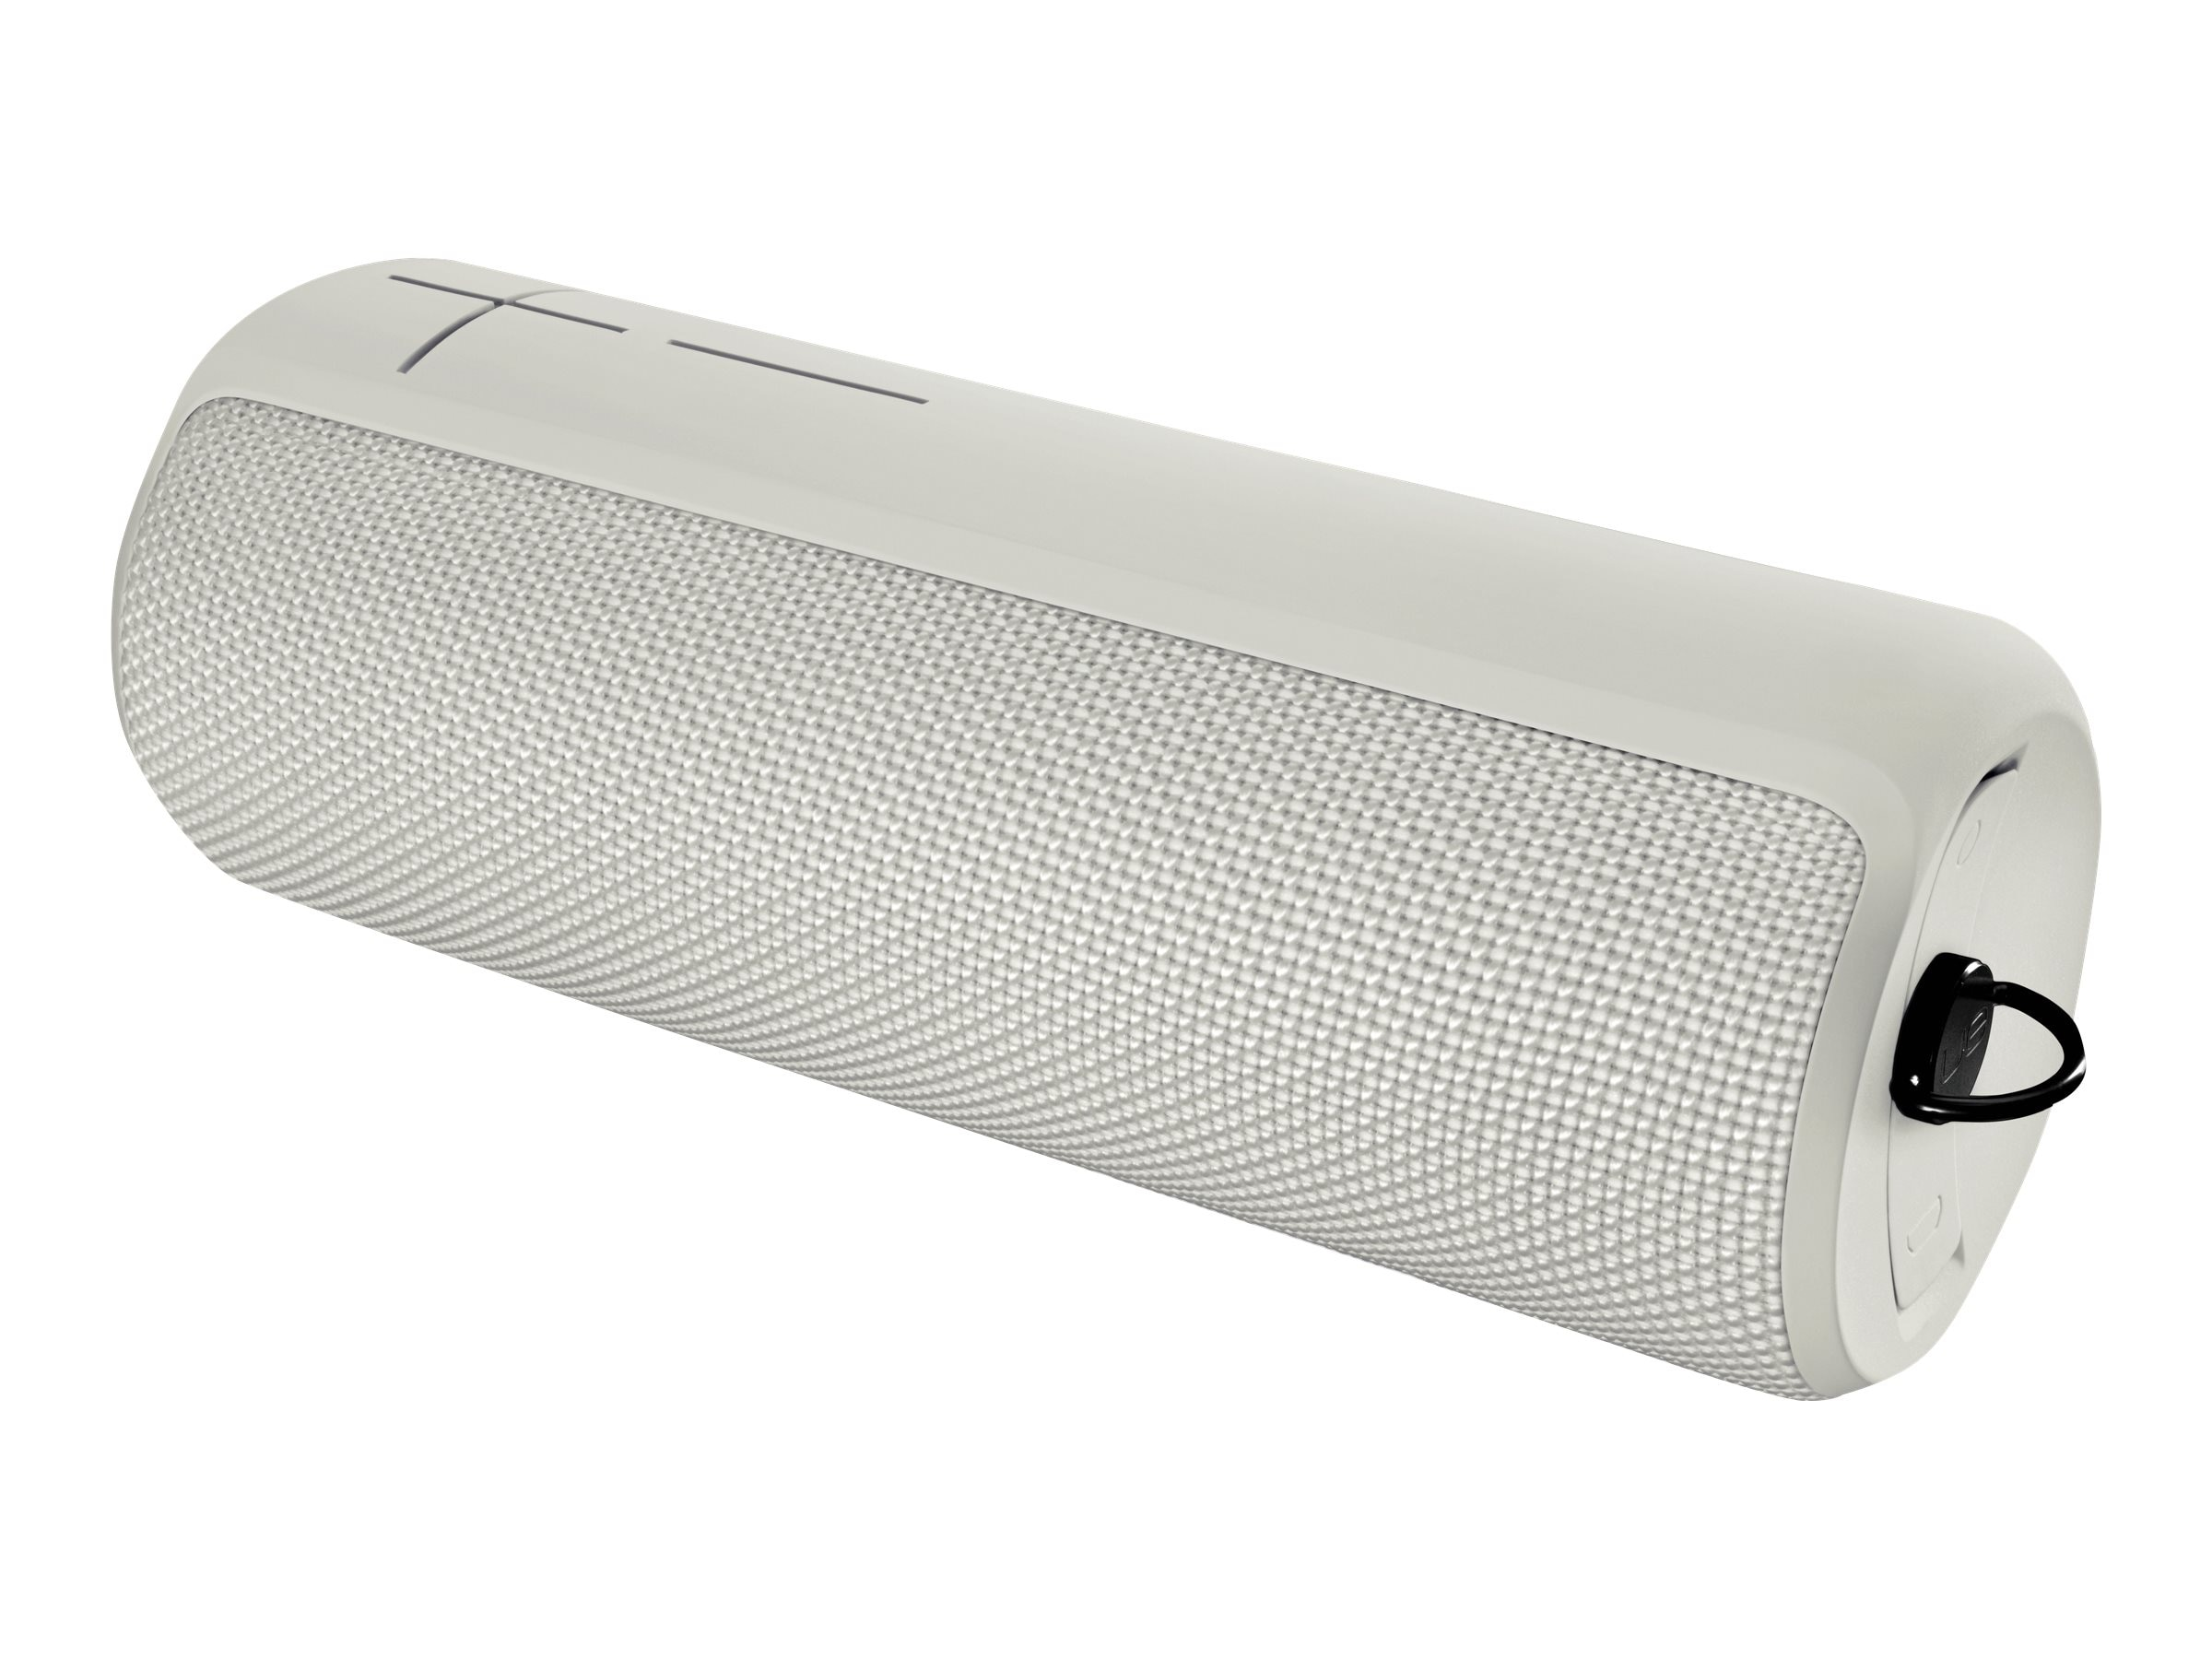 Logitech UE Boom 2 Wireless Speaker, Yeti, 984-000556, 30971043, Speakers - Audio